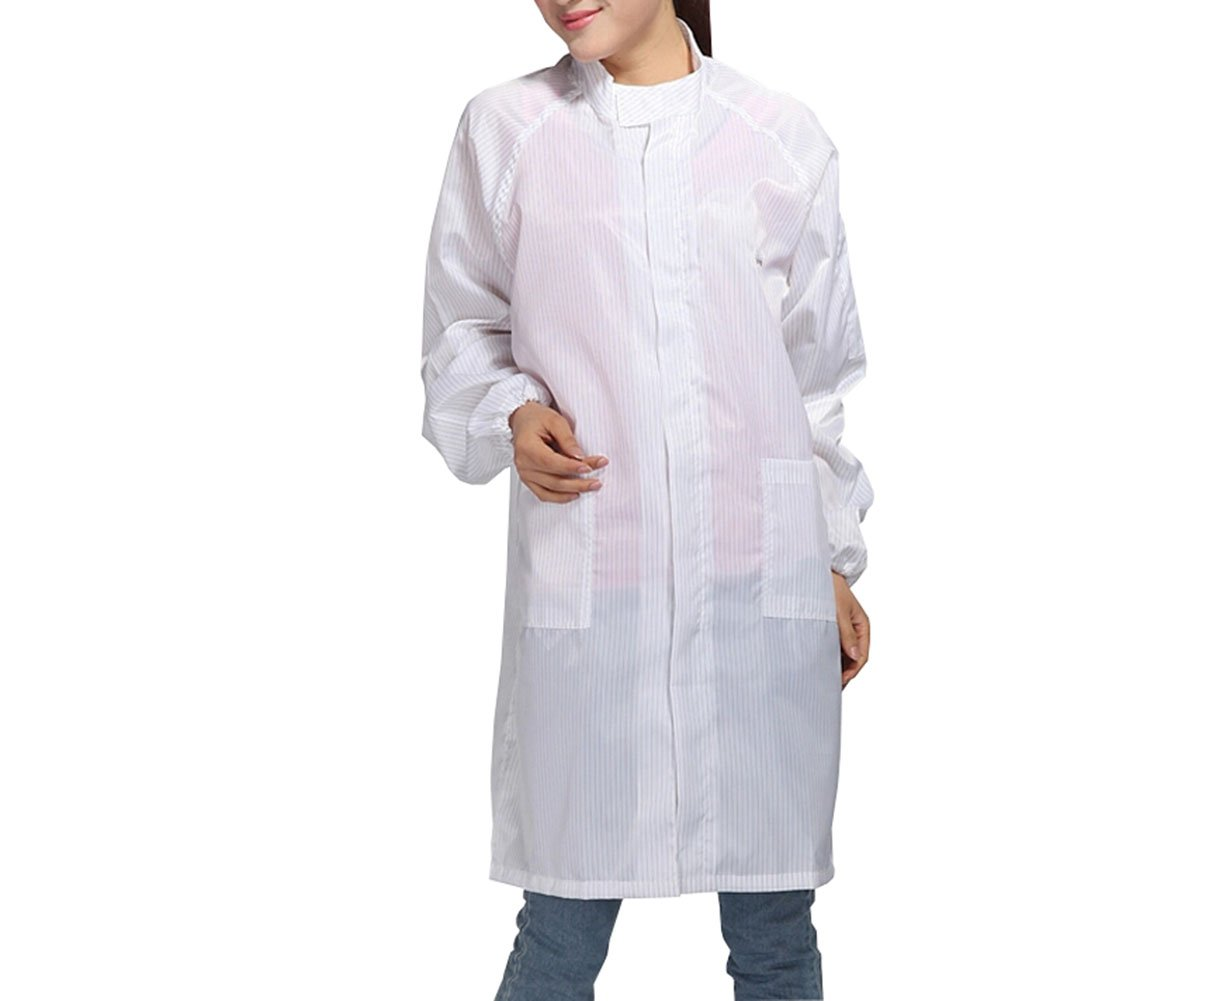 Olyer ESD Overall Gown Anti Static Stand Collar Gown Zipper Dust-Free Clothing Work Clothes (XXL, White)